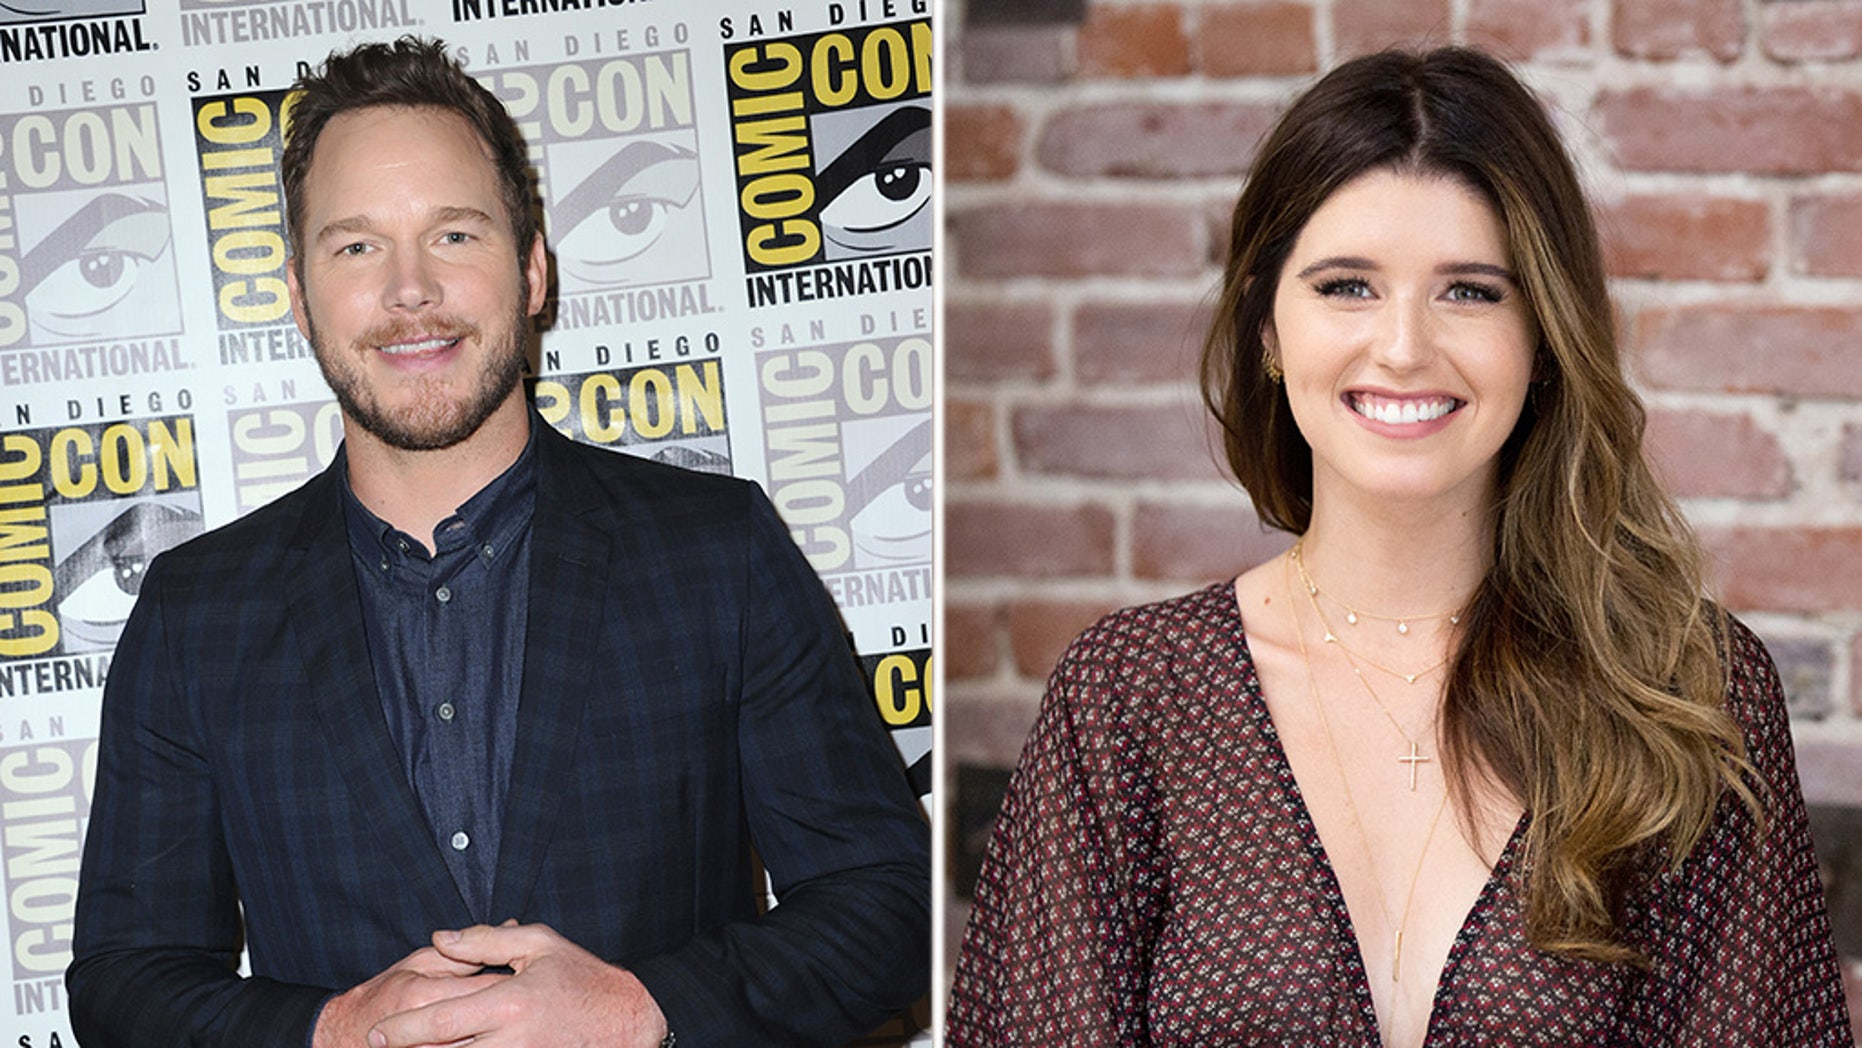 Chris Pratt and Katherine Schwarzenegger have been spotted together numerous times in recent months — and several reports suggest the pair are starting to get serious about their relationship.